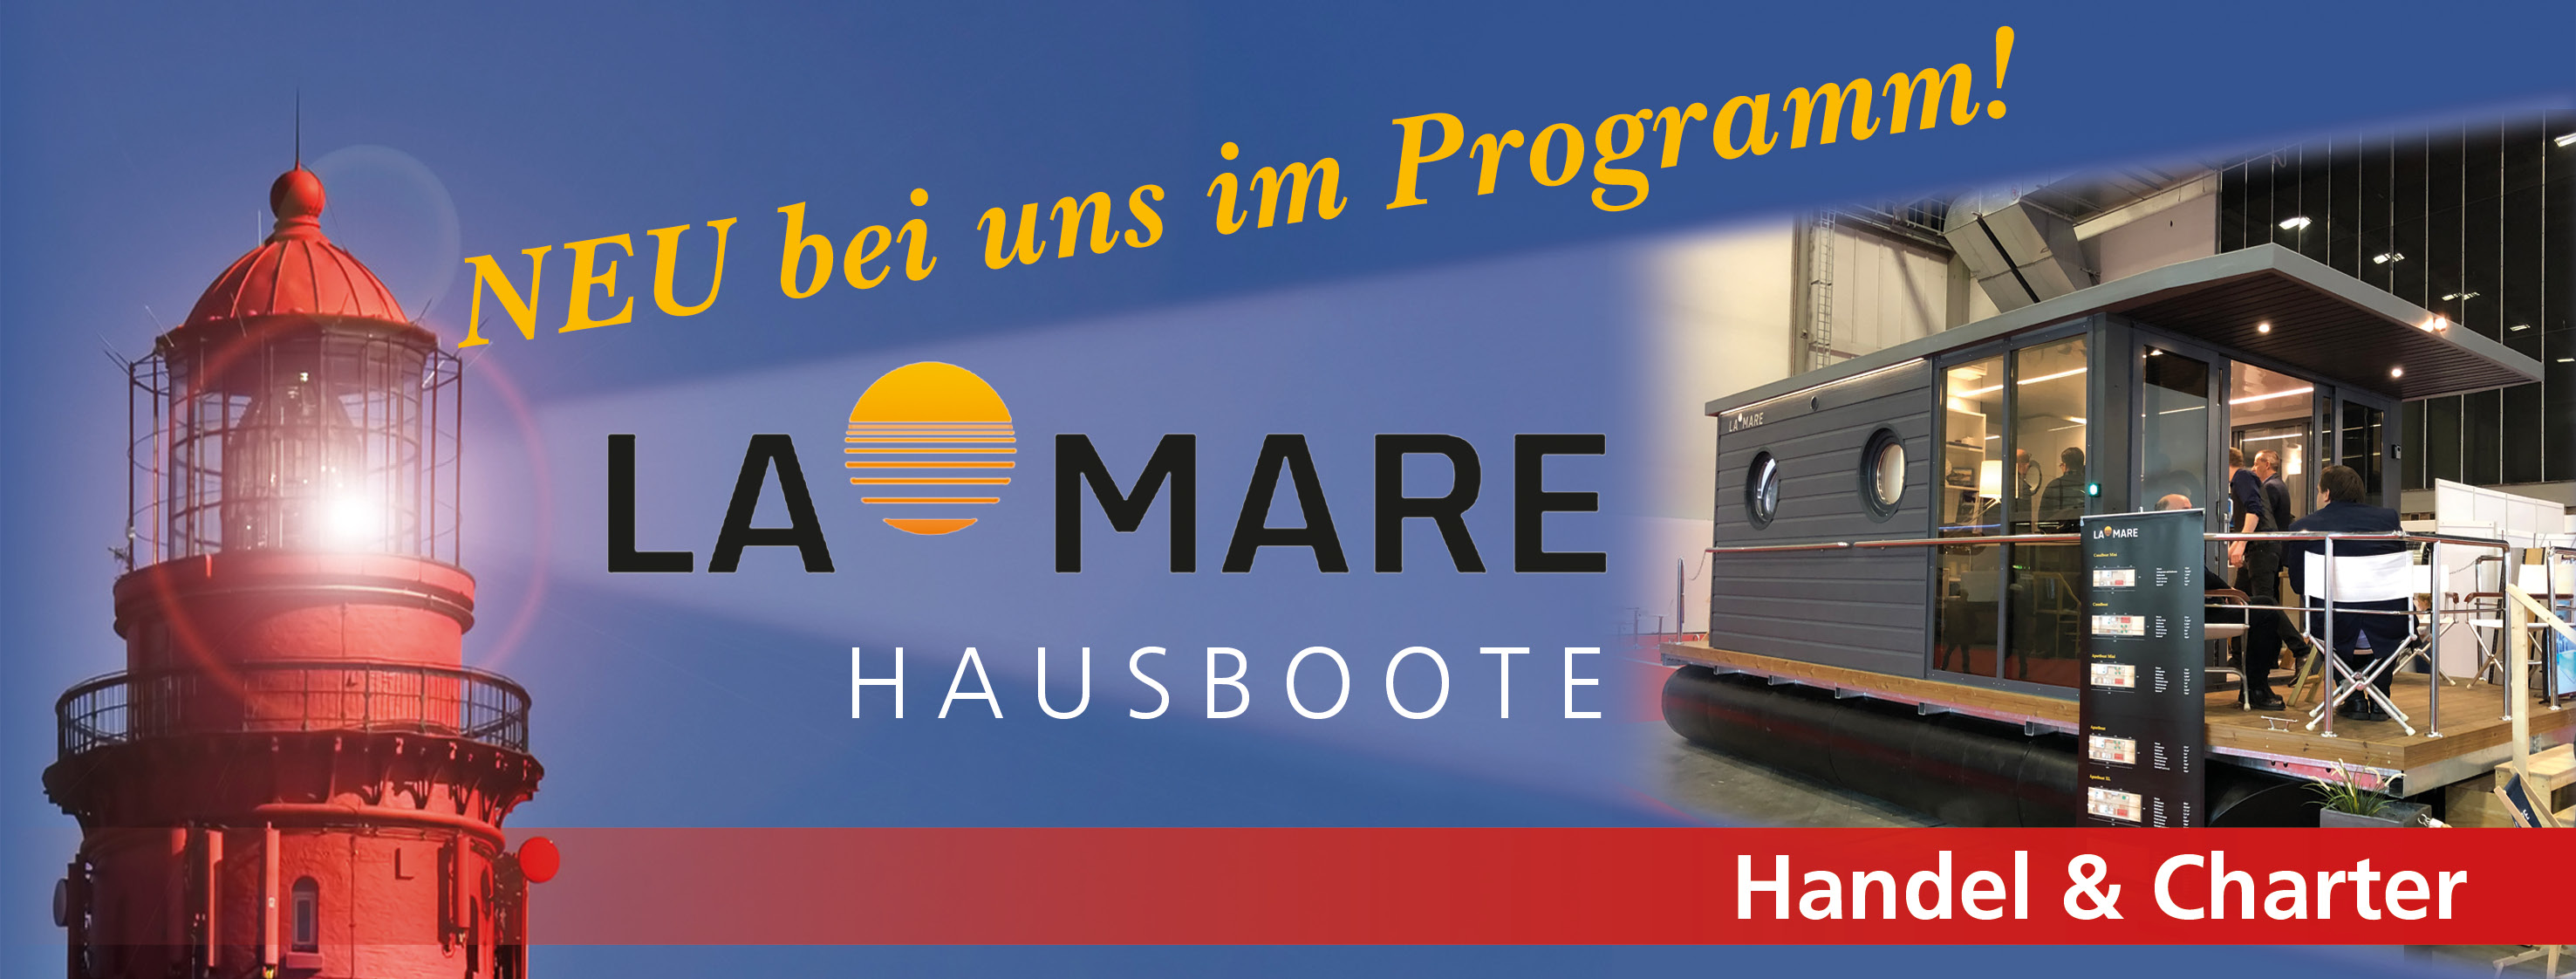 LaMare Hausboote